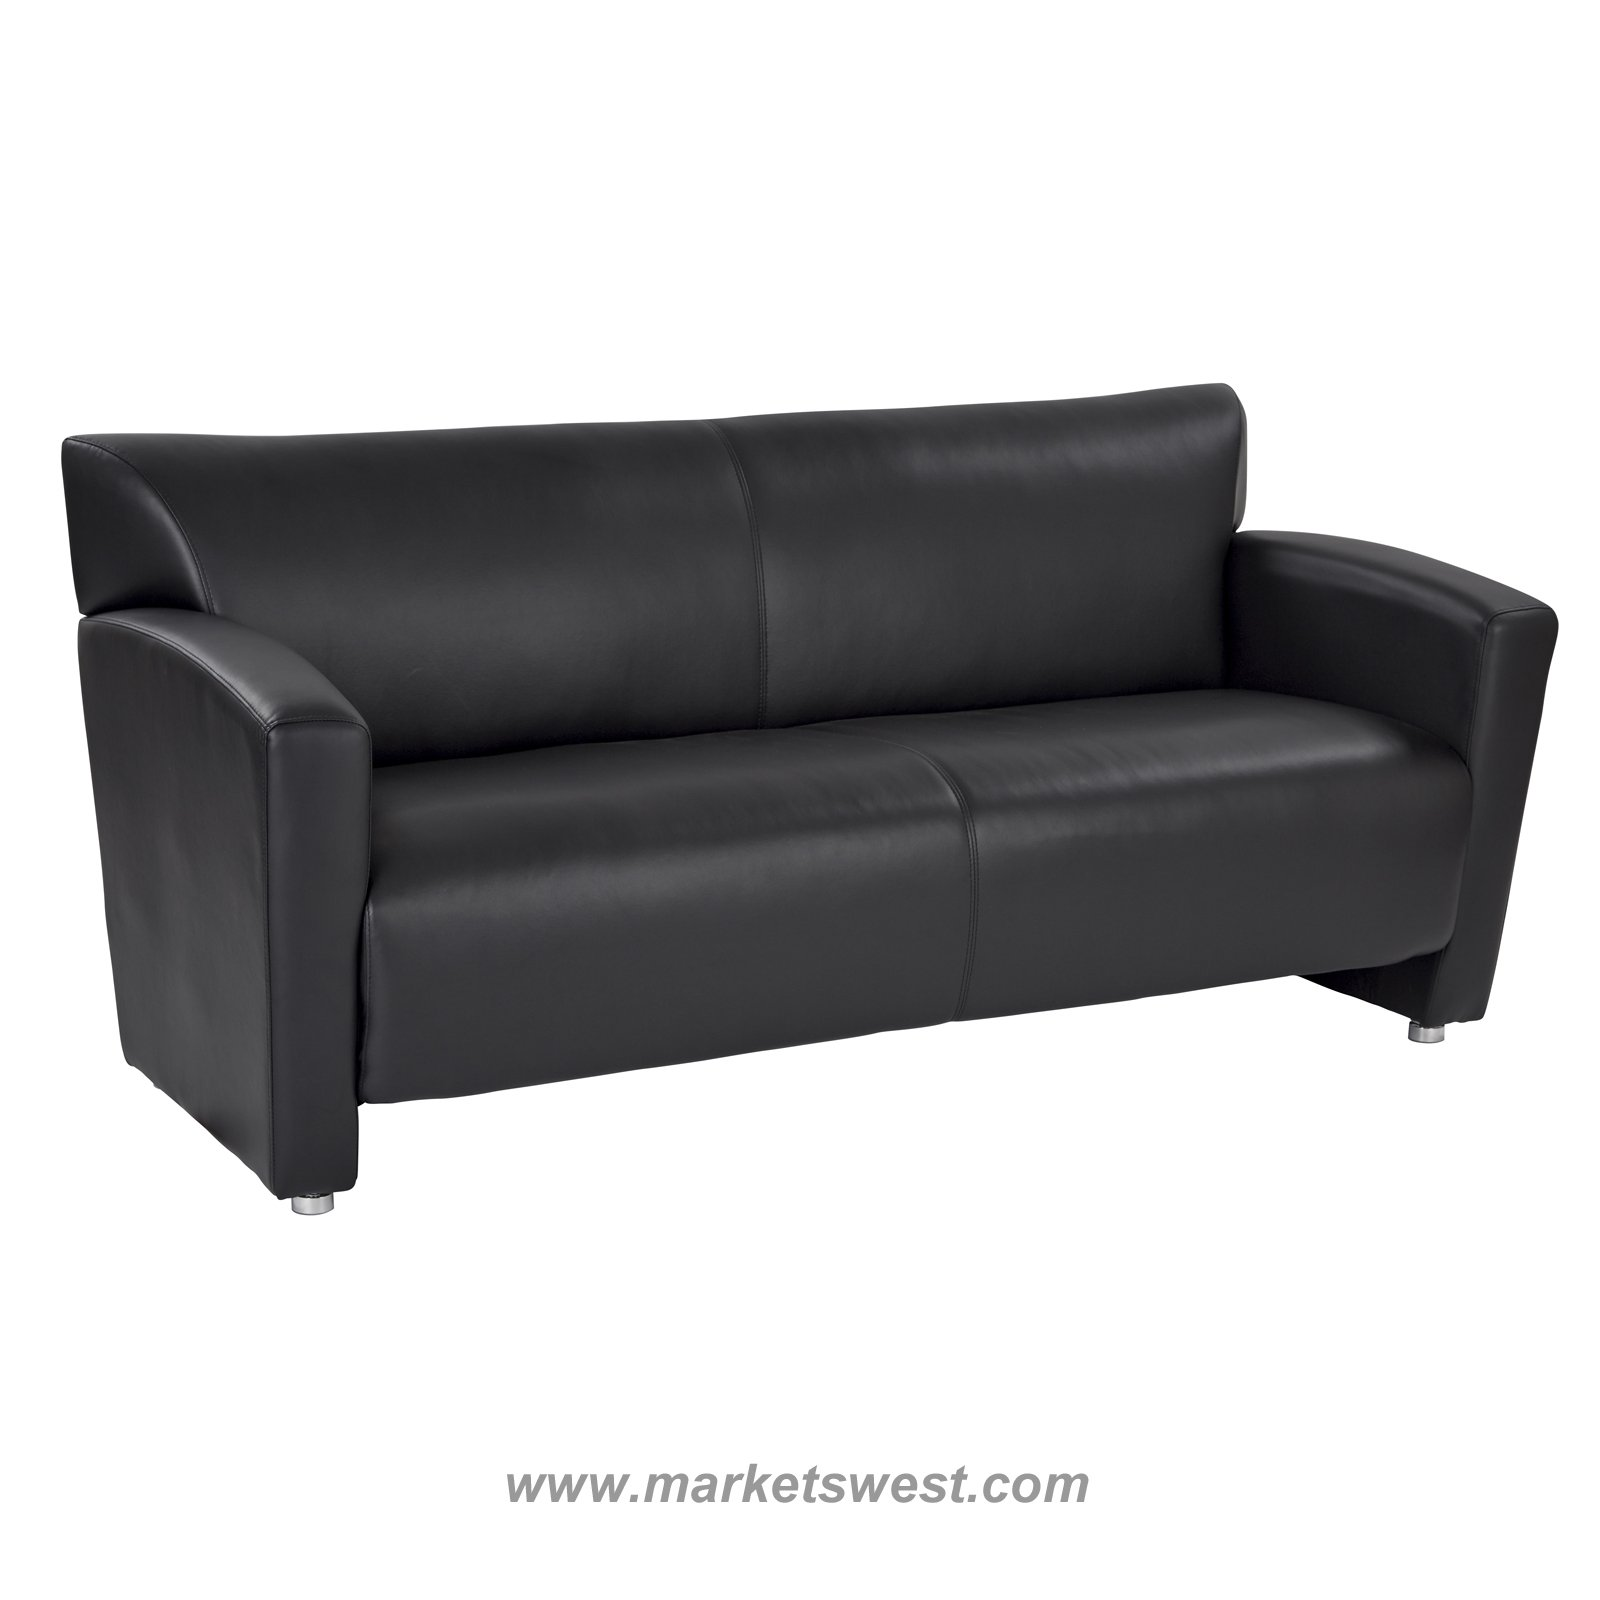 Fine Black Faux Leather Sofa With Silver Finish Legs Short Links Chair Design For Home Short Linksinfo